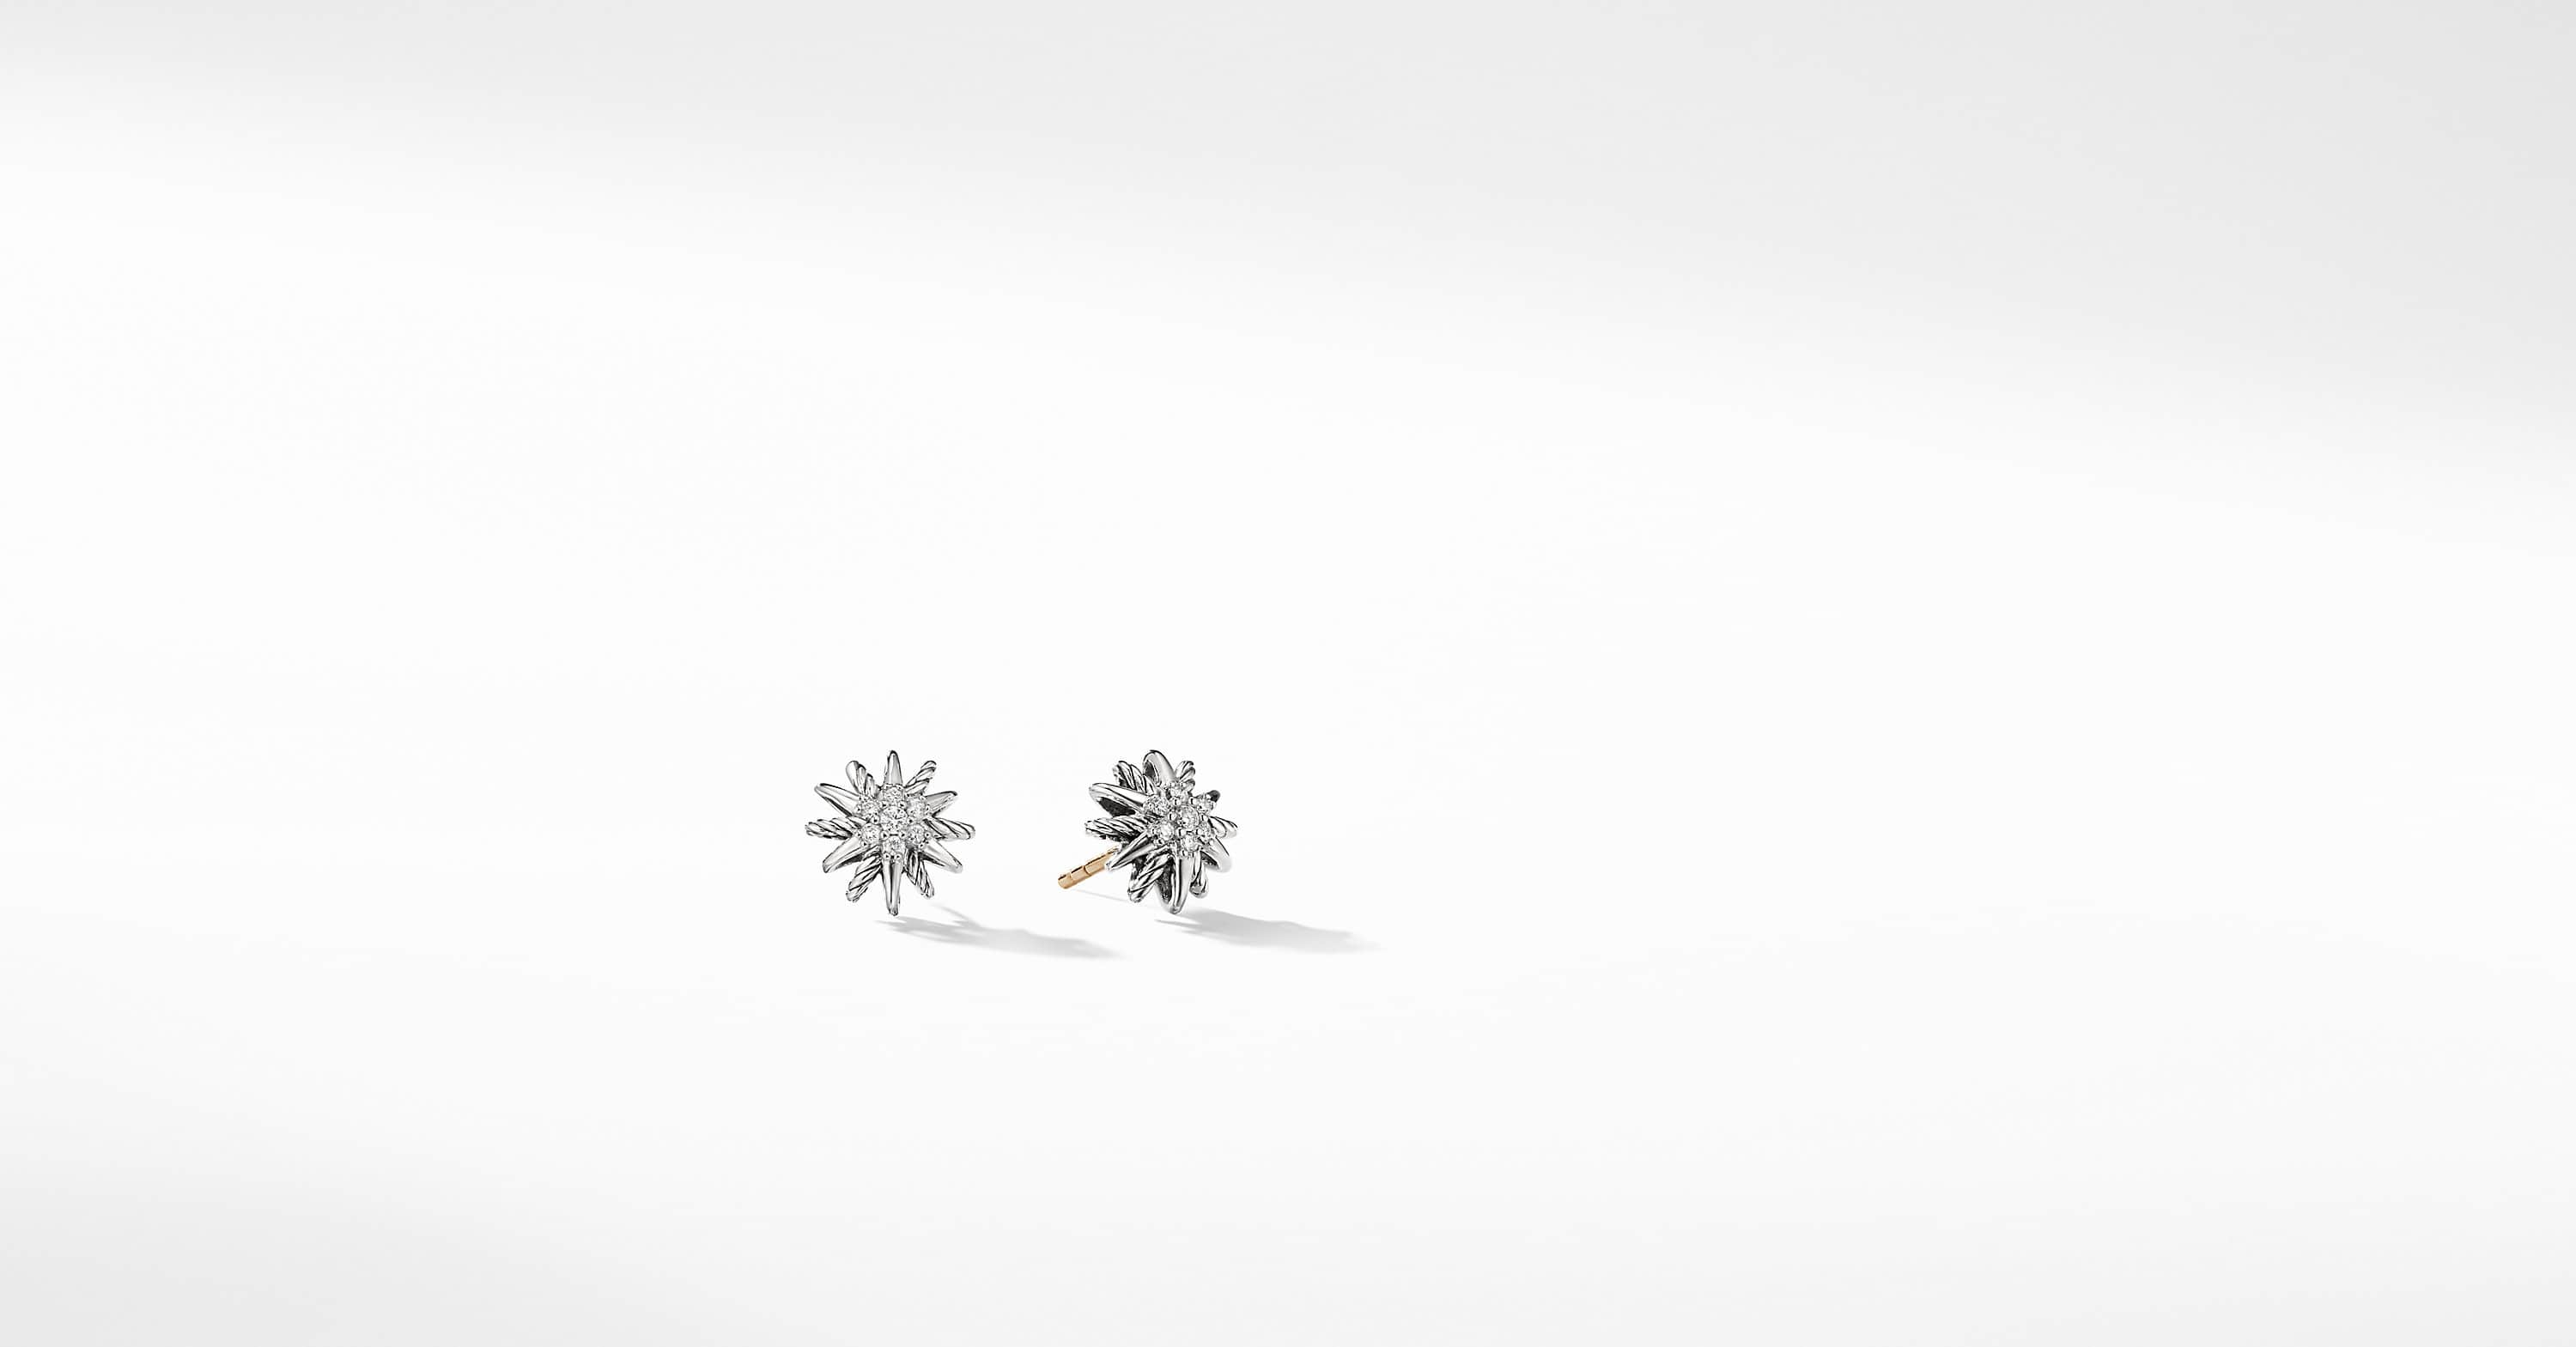 Starburst Earrings with Diamonds, 10mm